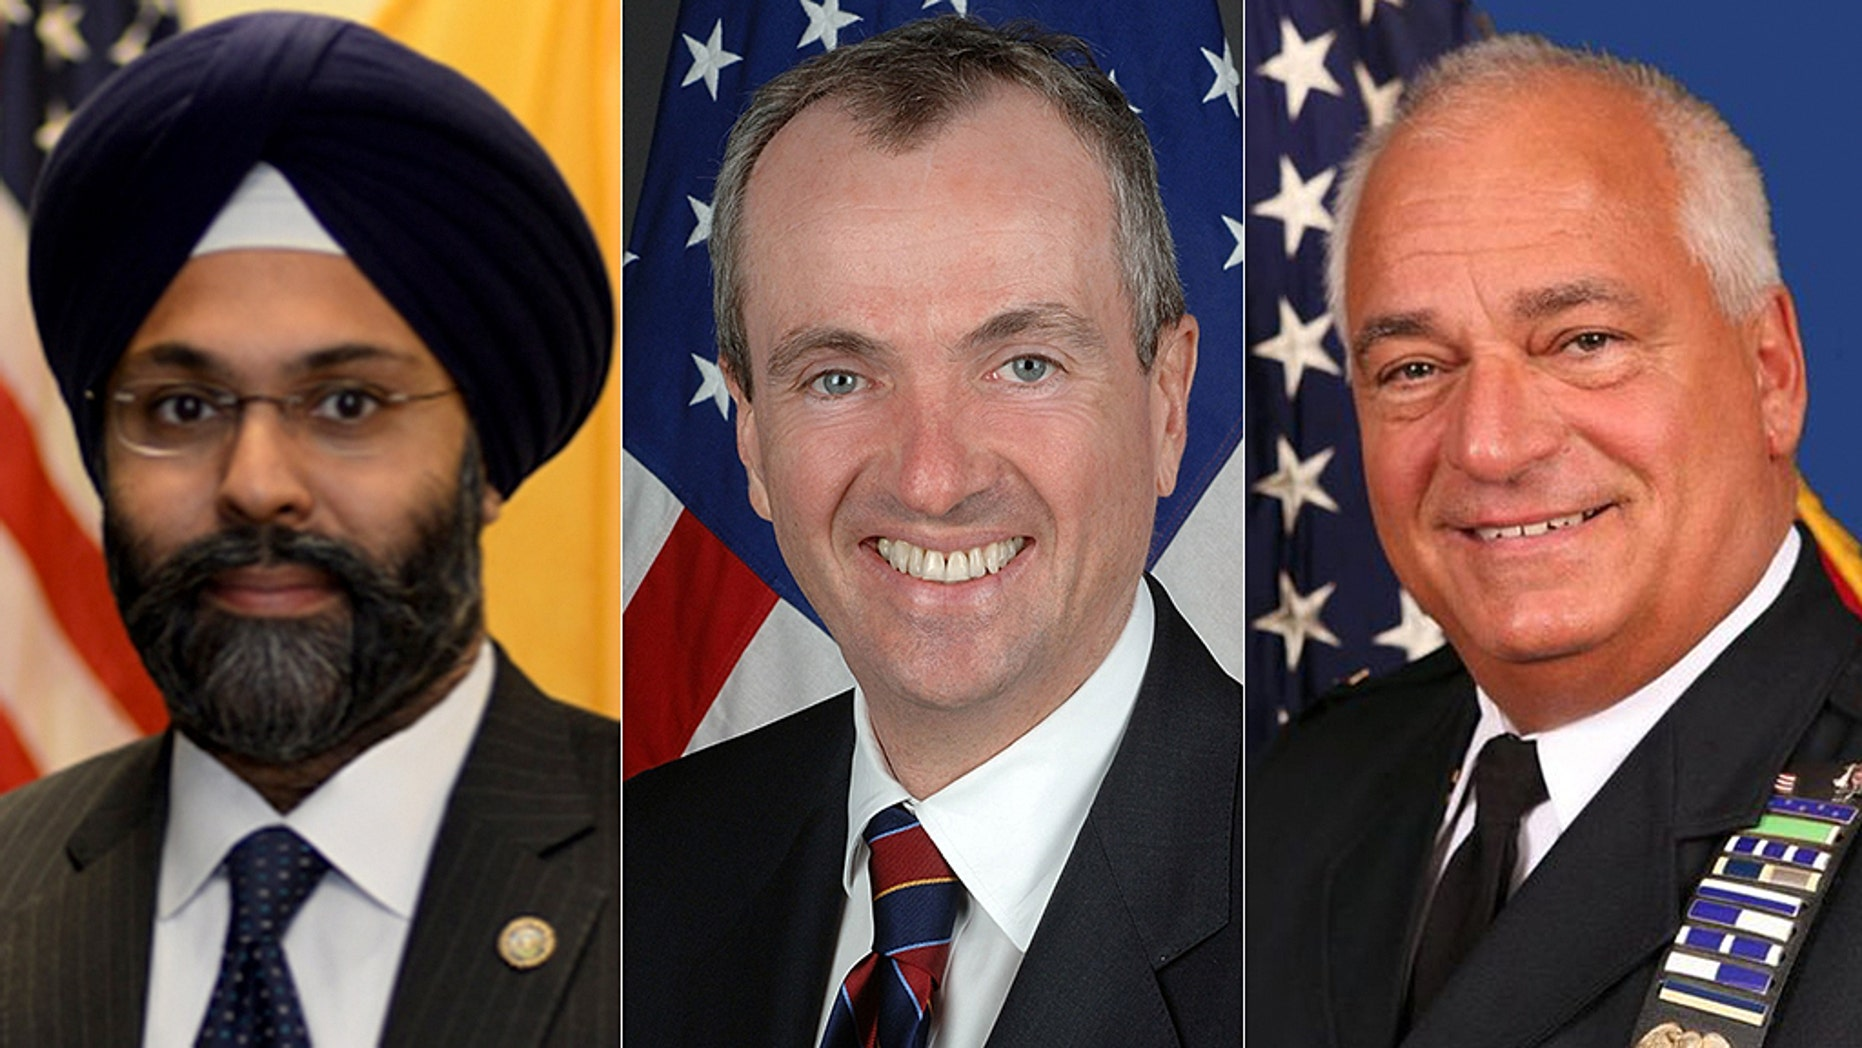 New Jersey Governor Phil Murphy, center, called on Bergen County Sheriff Michael Saudino, right, to resign following his comments about African Americans and Attorney General Gurbir Grewal, left.